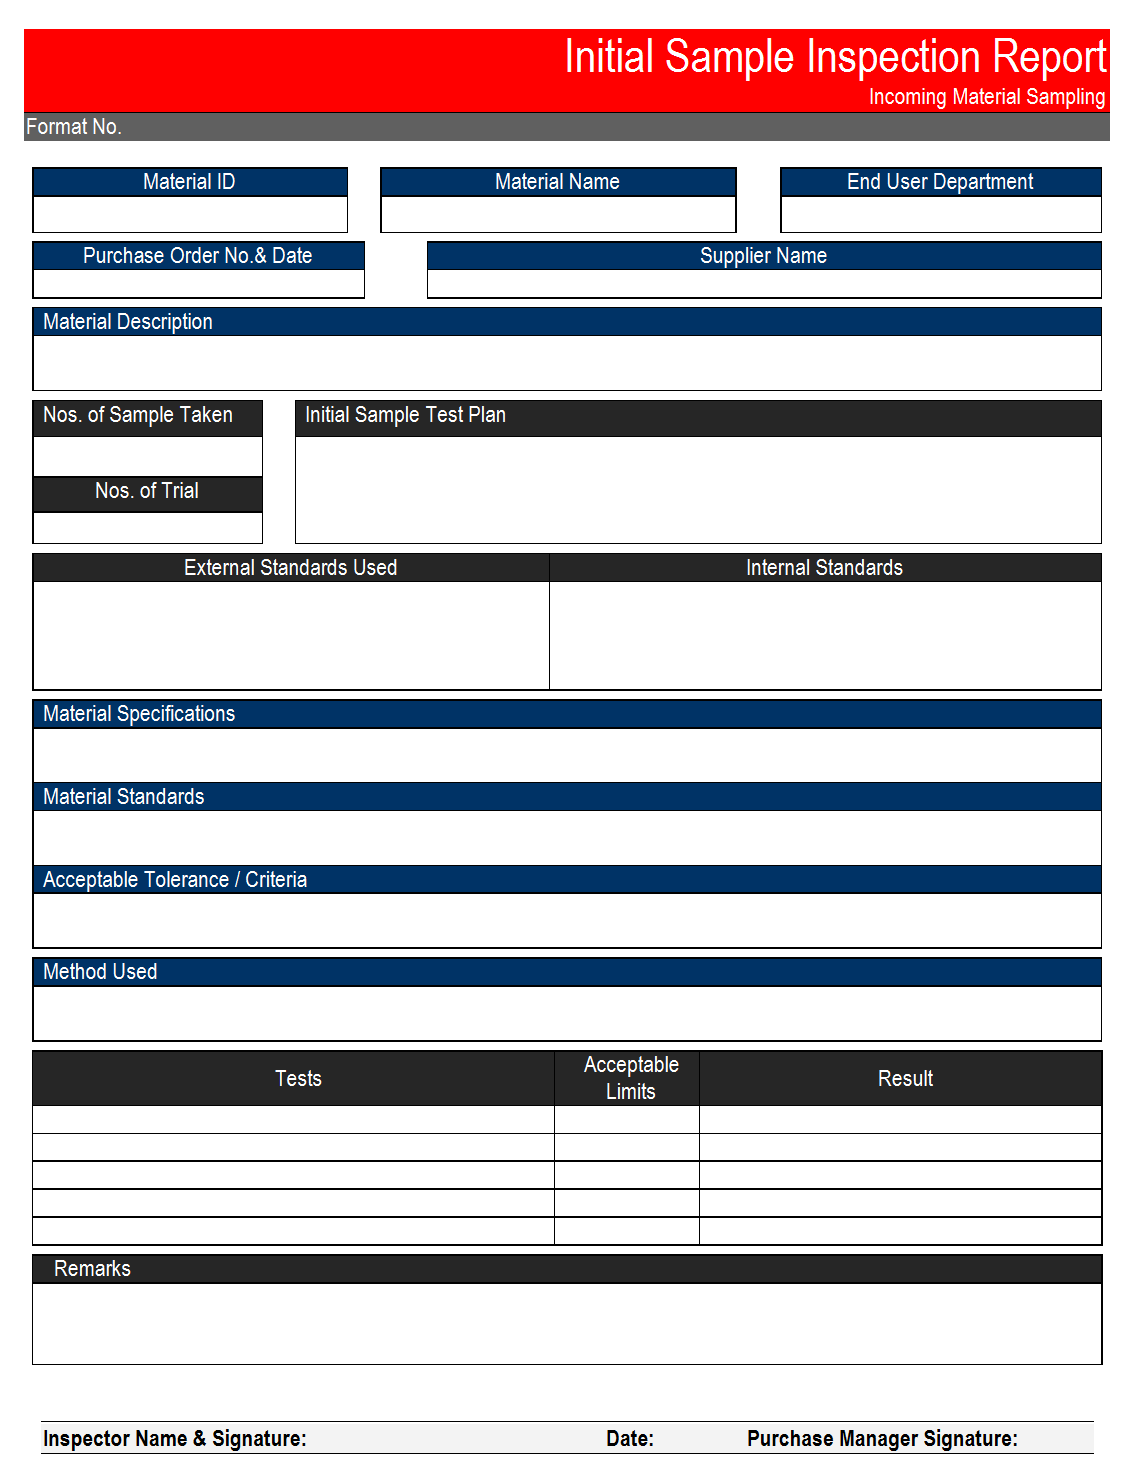 Initial Sample Inspection Report Format Samples Word Document